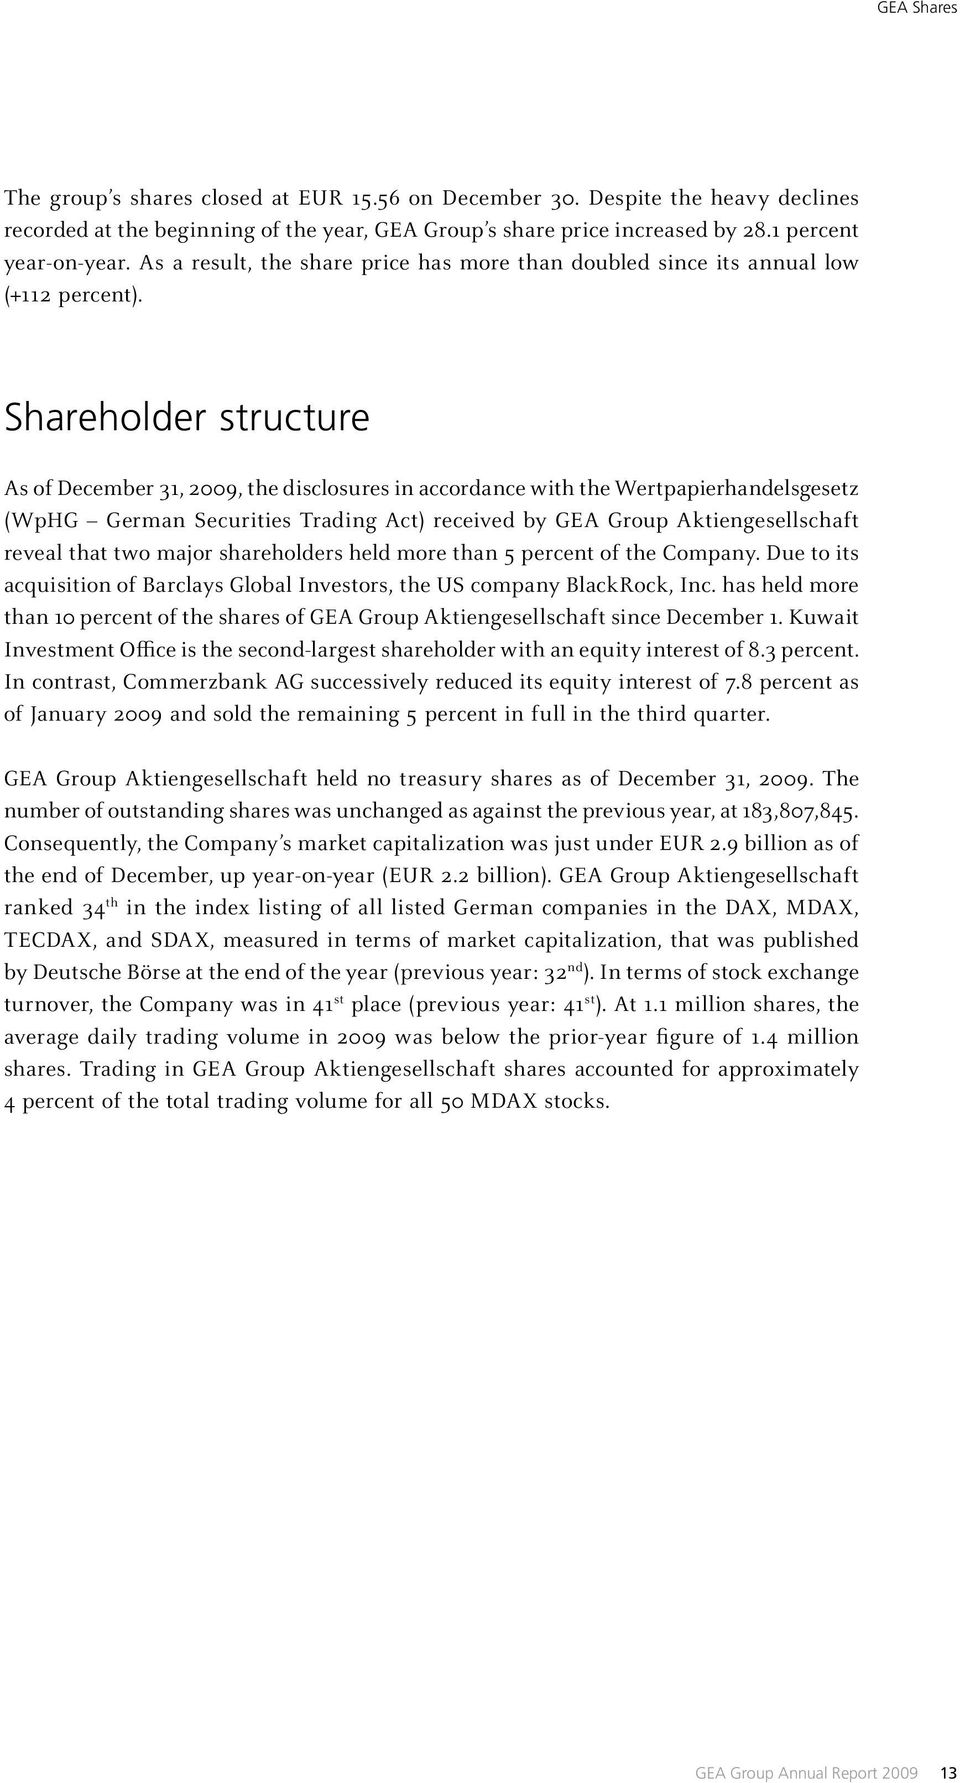 Shareholder structure As of December 31, 2009, the disclosures in accordance with the Wertpapierhandelsgesetz (WpHG German Securities Trading Act) received by GEA Group Aktiengesellschaft reveal that